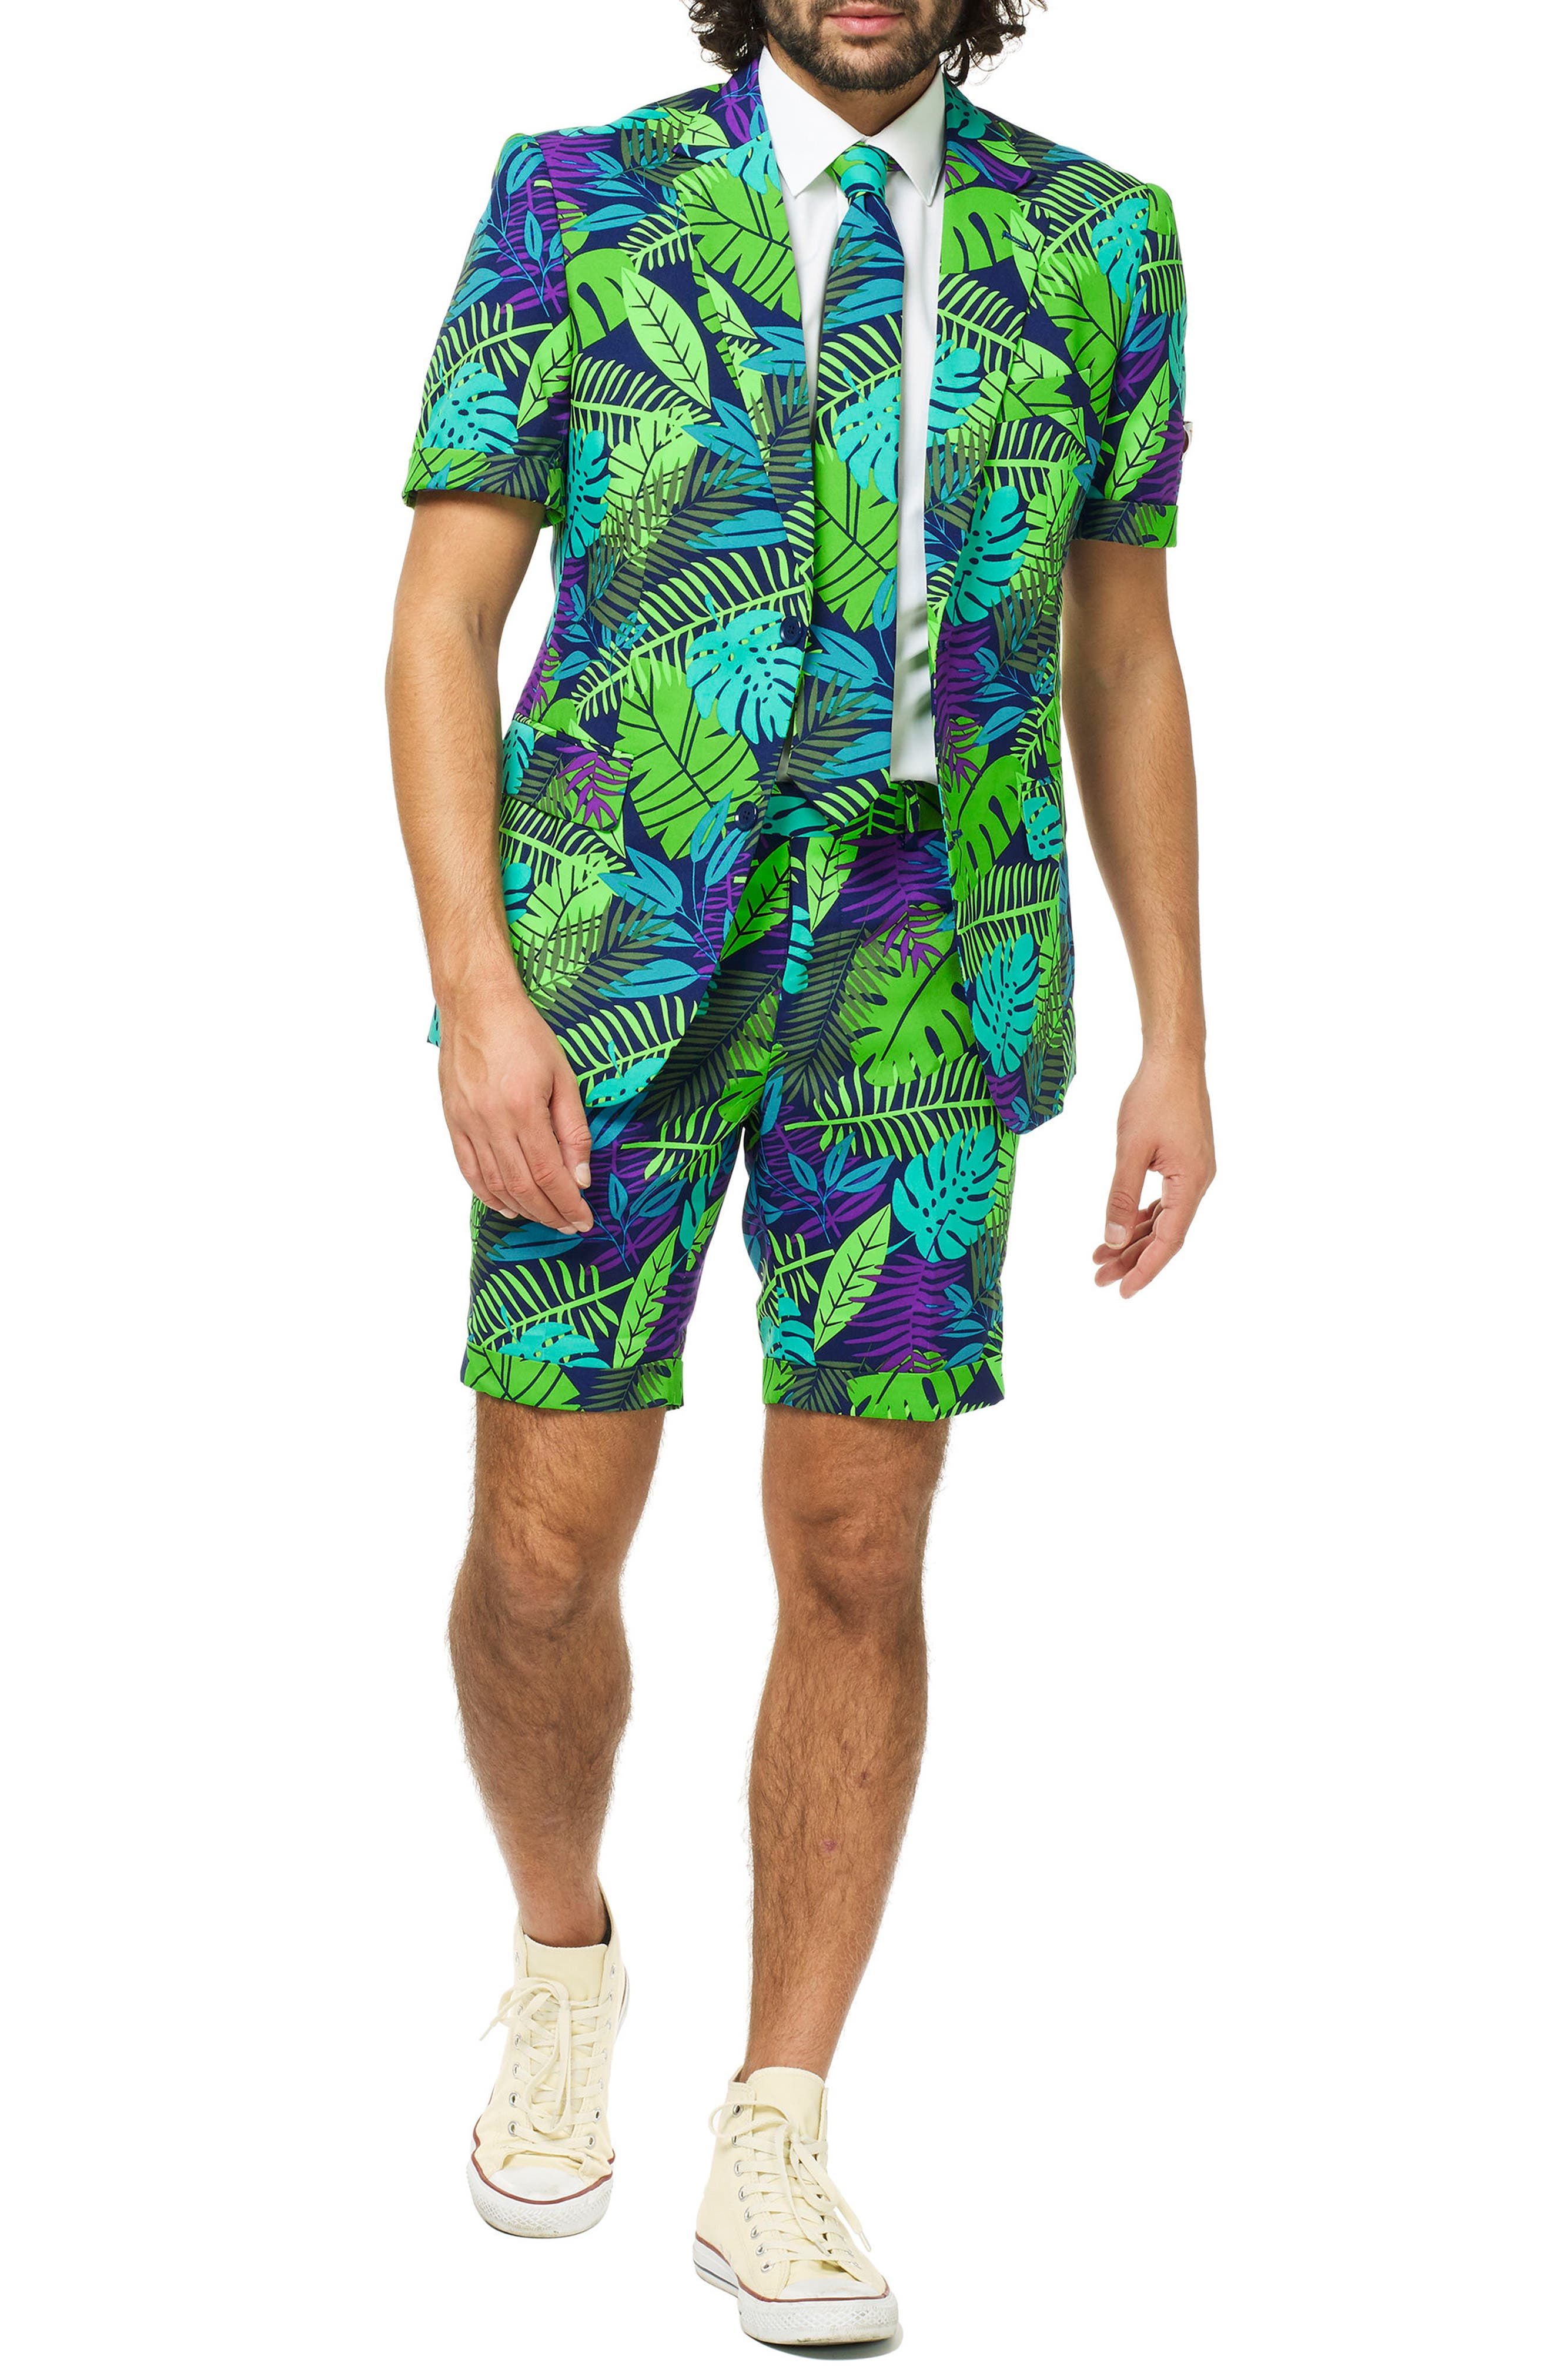 Juicy Jungle Trim Fit Two-Piece Short Suit with Tie,                         Main,                         color, Miscellaneous